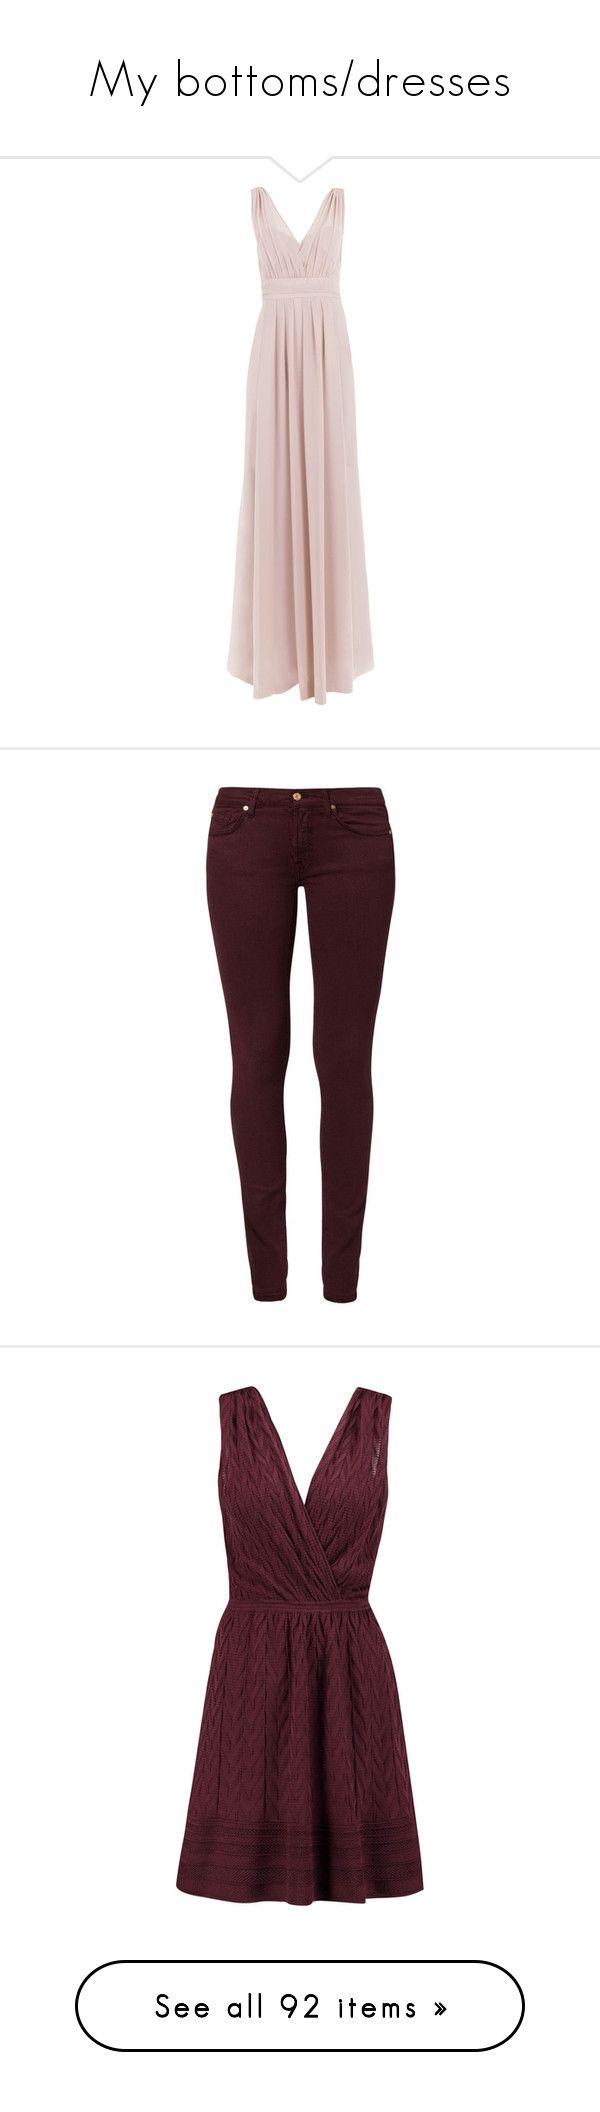 """""""My bottoms/dresses"""" by lightvega ❤ liked on Polyvore featuring dresses, pink dress, jeans, pants, bottoms, bordeaux, skinny jeans, brown skinny jeans, slim fit jeans and brown denim jeans"""